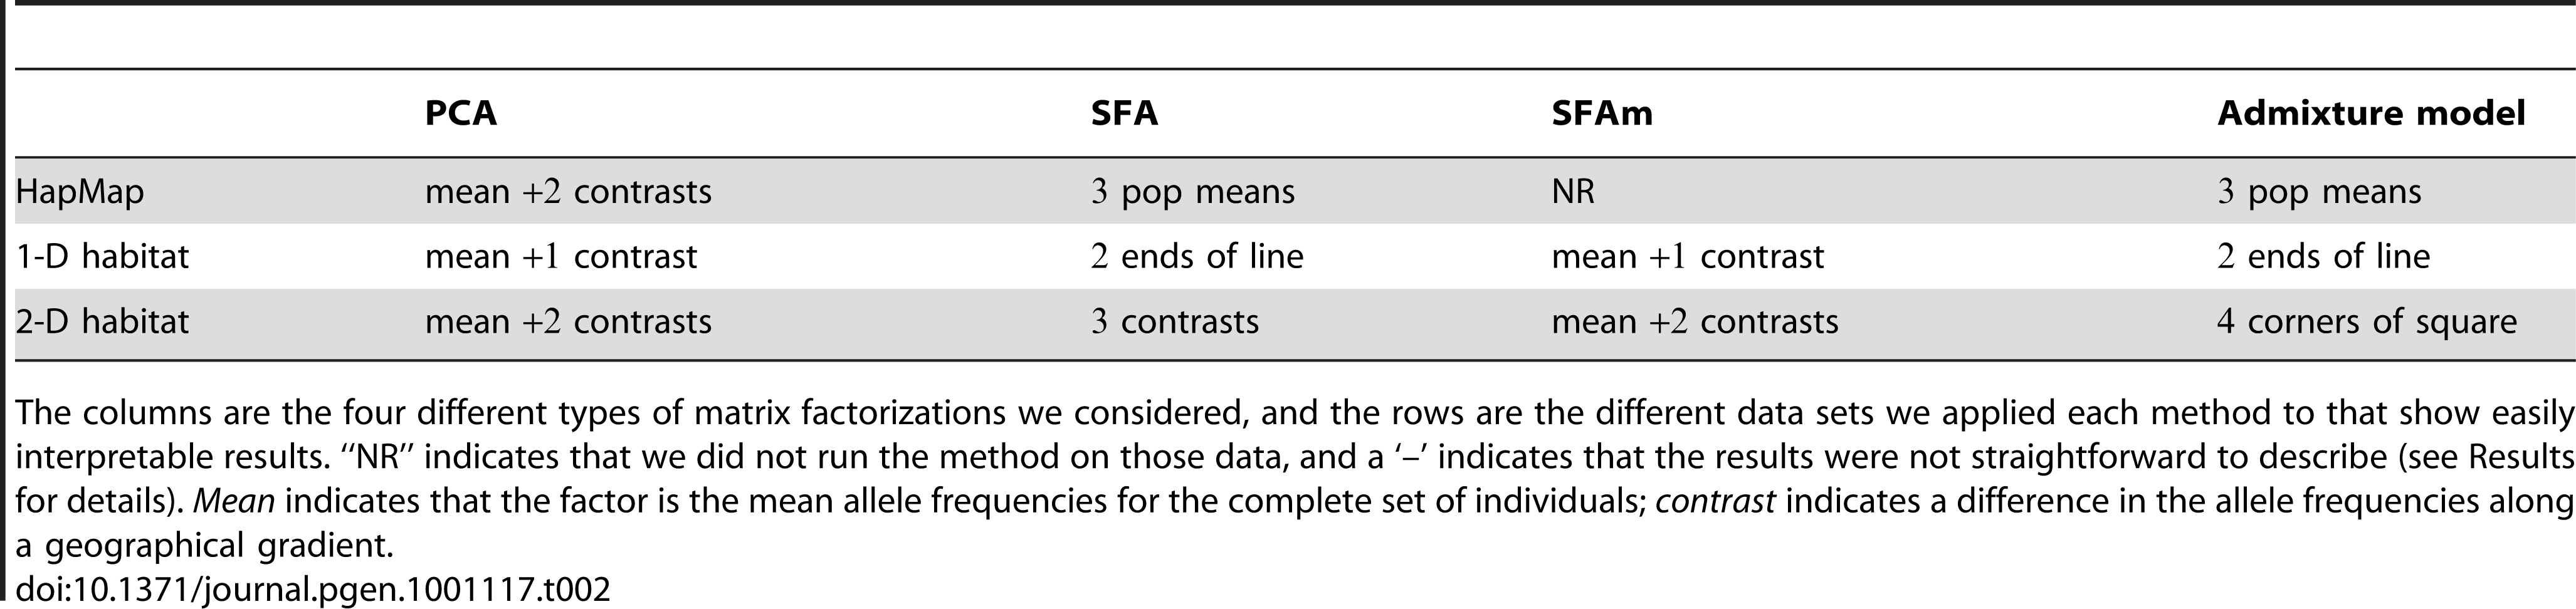 Summary of results across PCA, SFA, and admixture-based models.